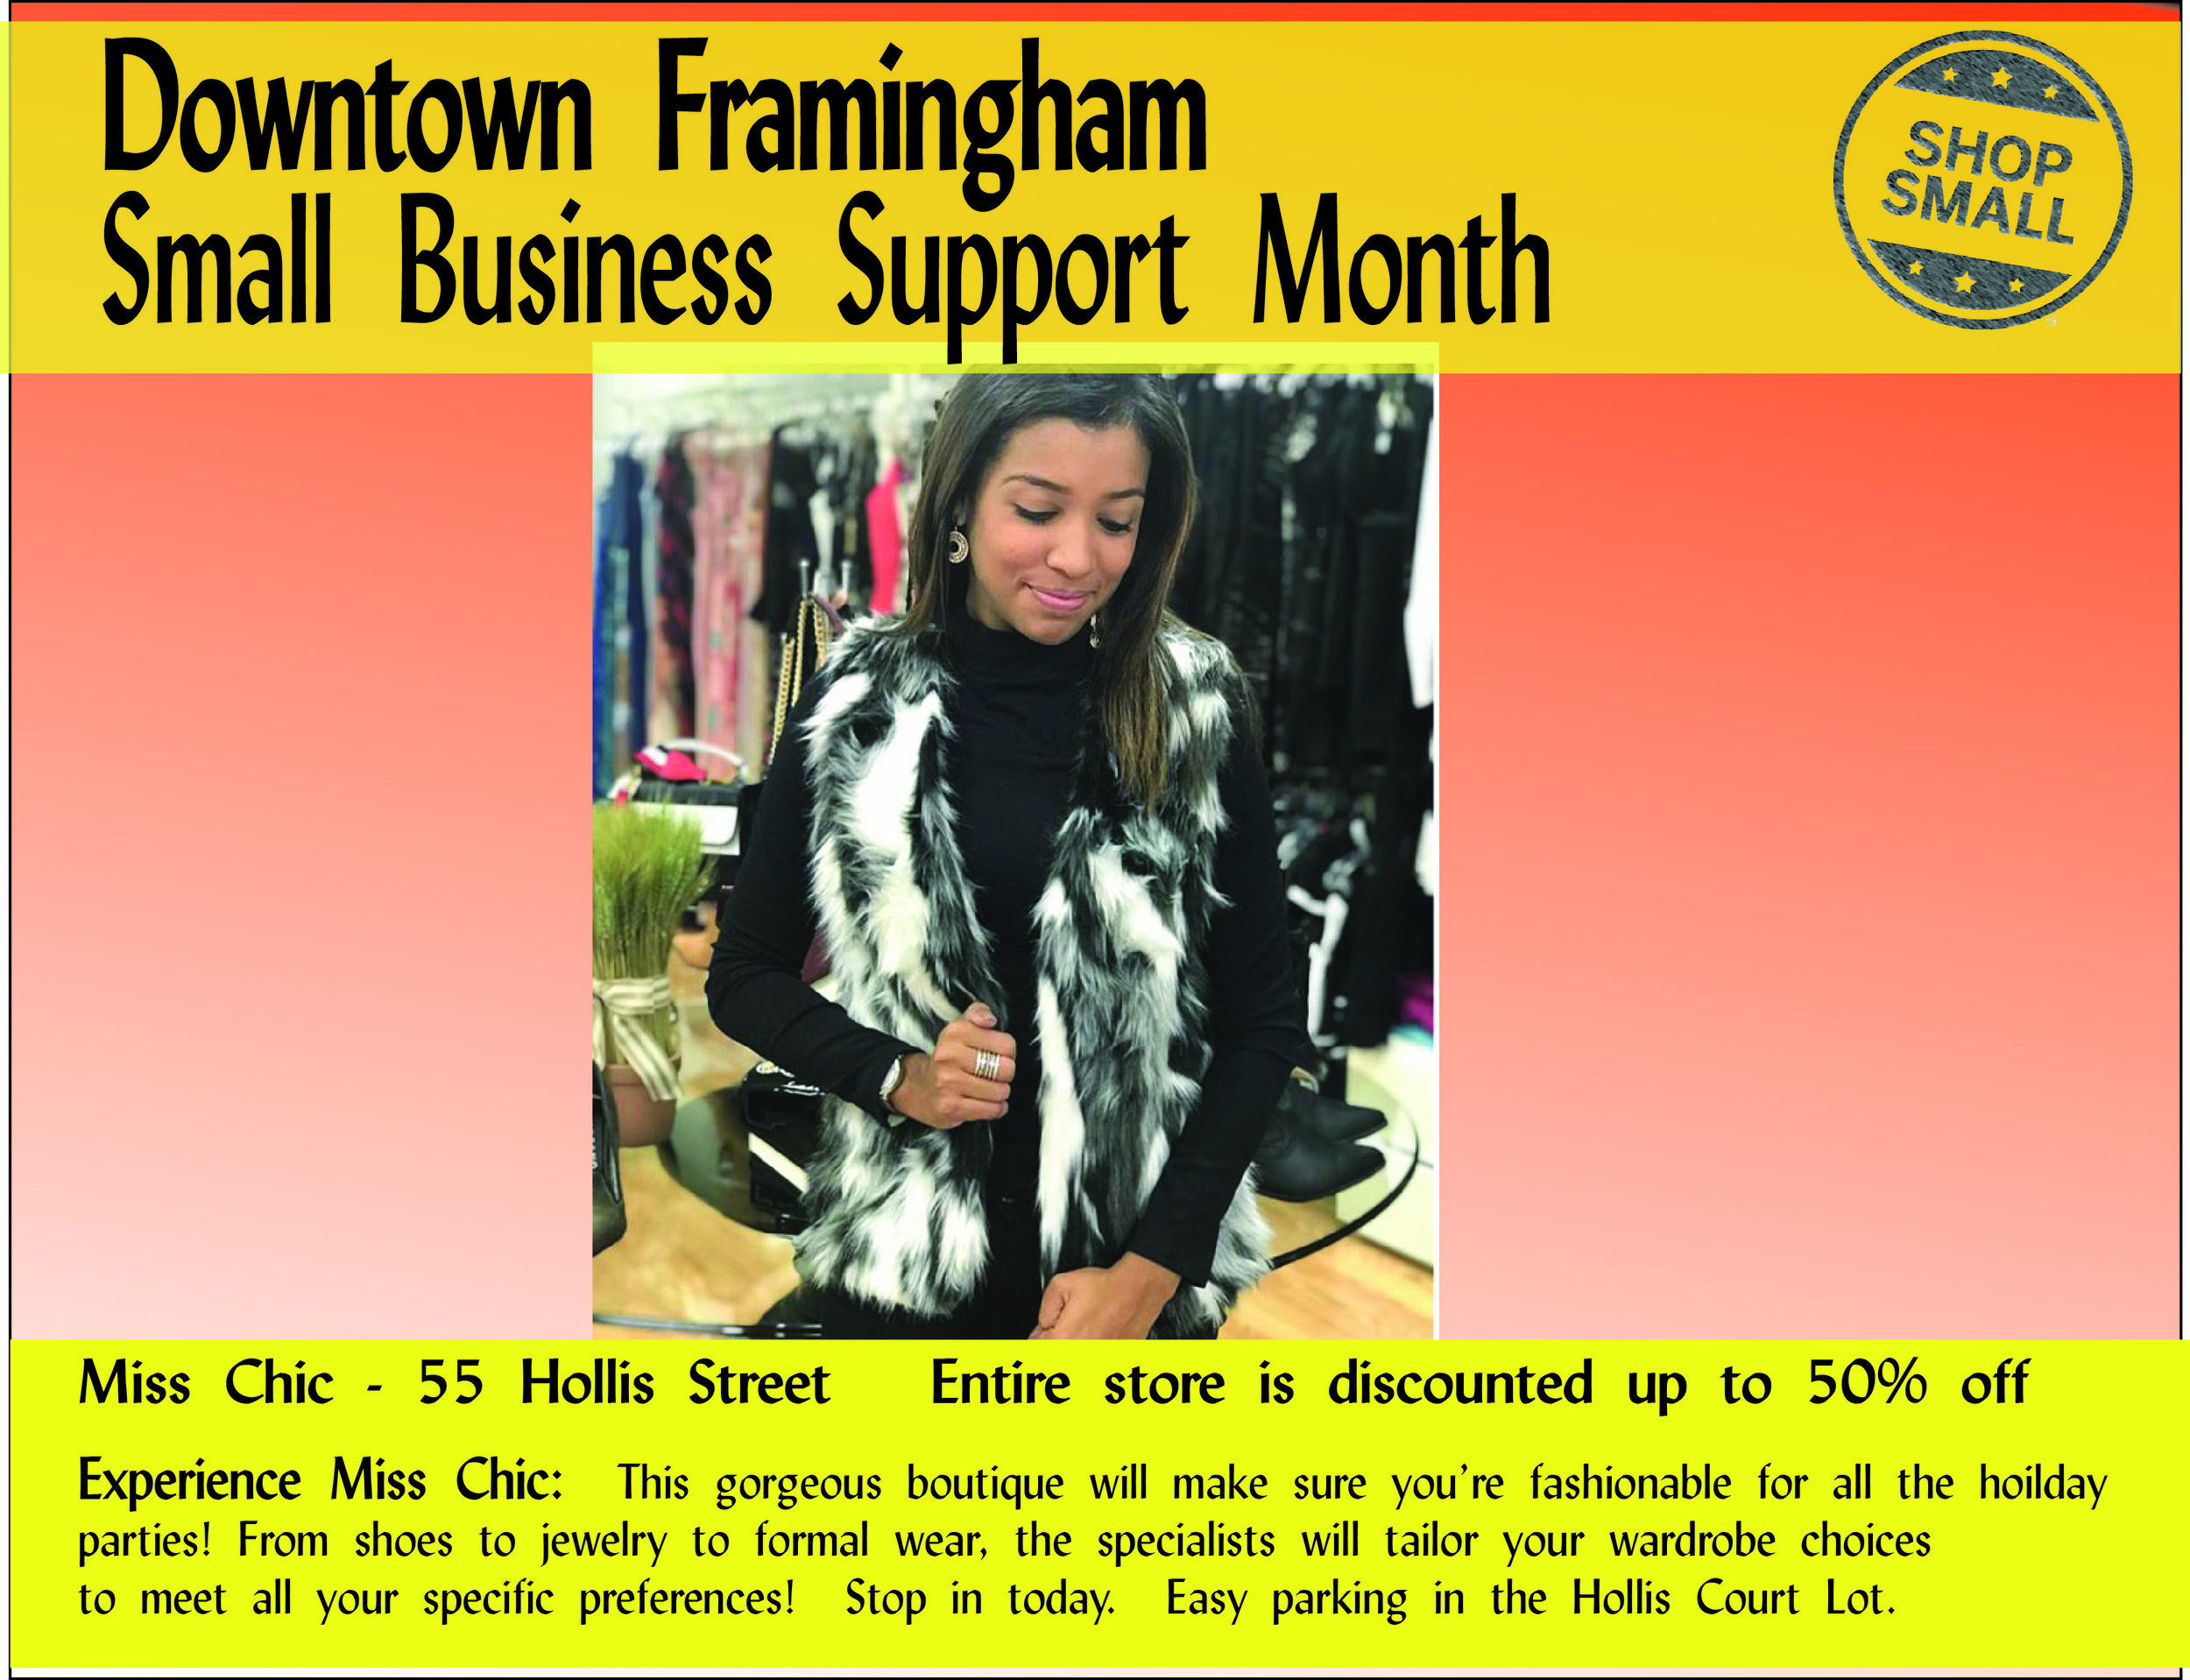 """It's Day 18 of Small Business Support Month! Reason #18 : """"Small businesses often dictate their own prices to remain competitive, which means you can often find better quality items at good costs.""""  Miss Chic  is offering discounts up to 50% off, helping to ensure you're dressed-to-impress this holiday season!"""